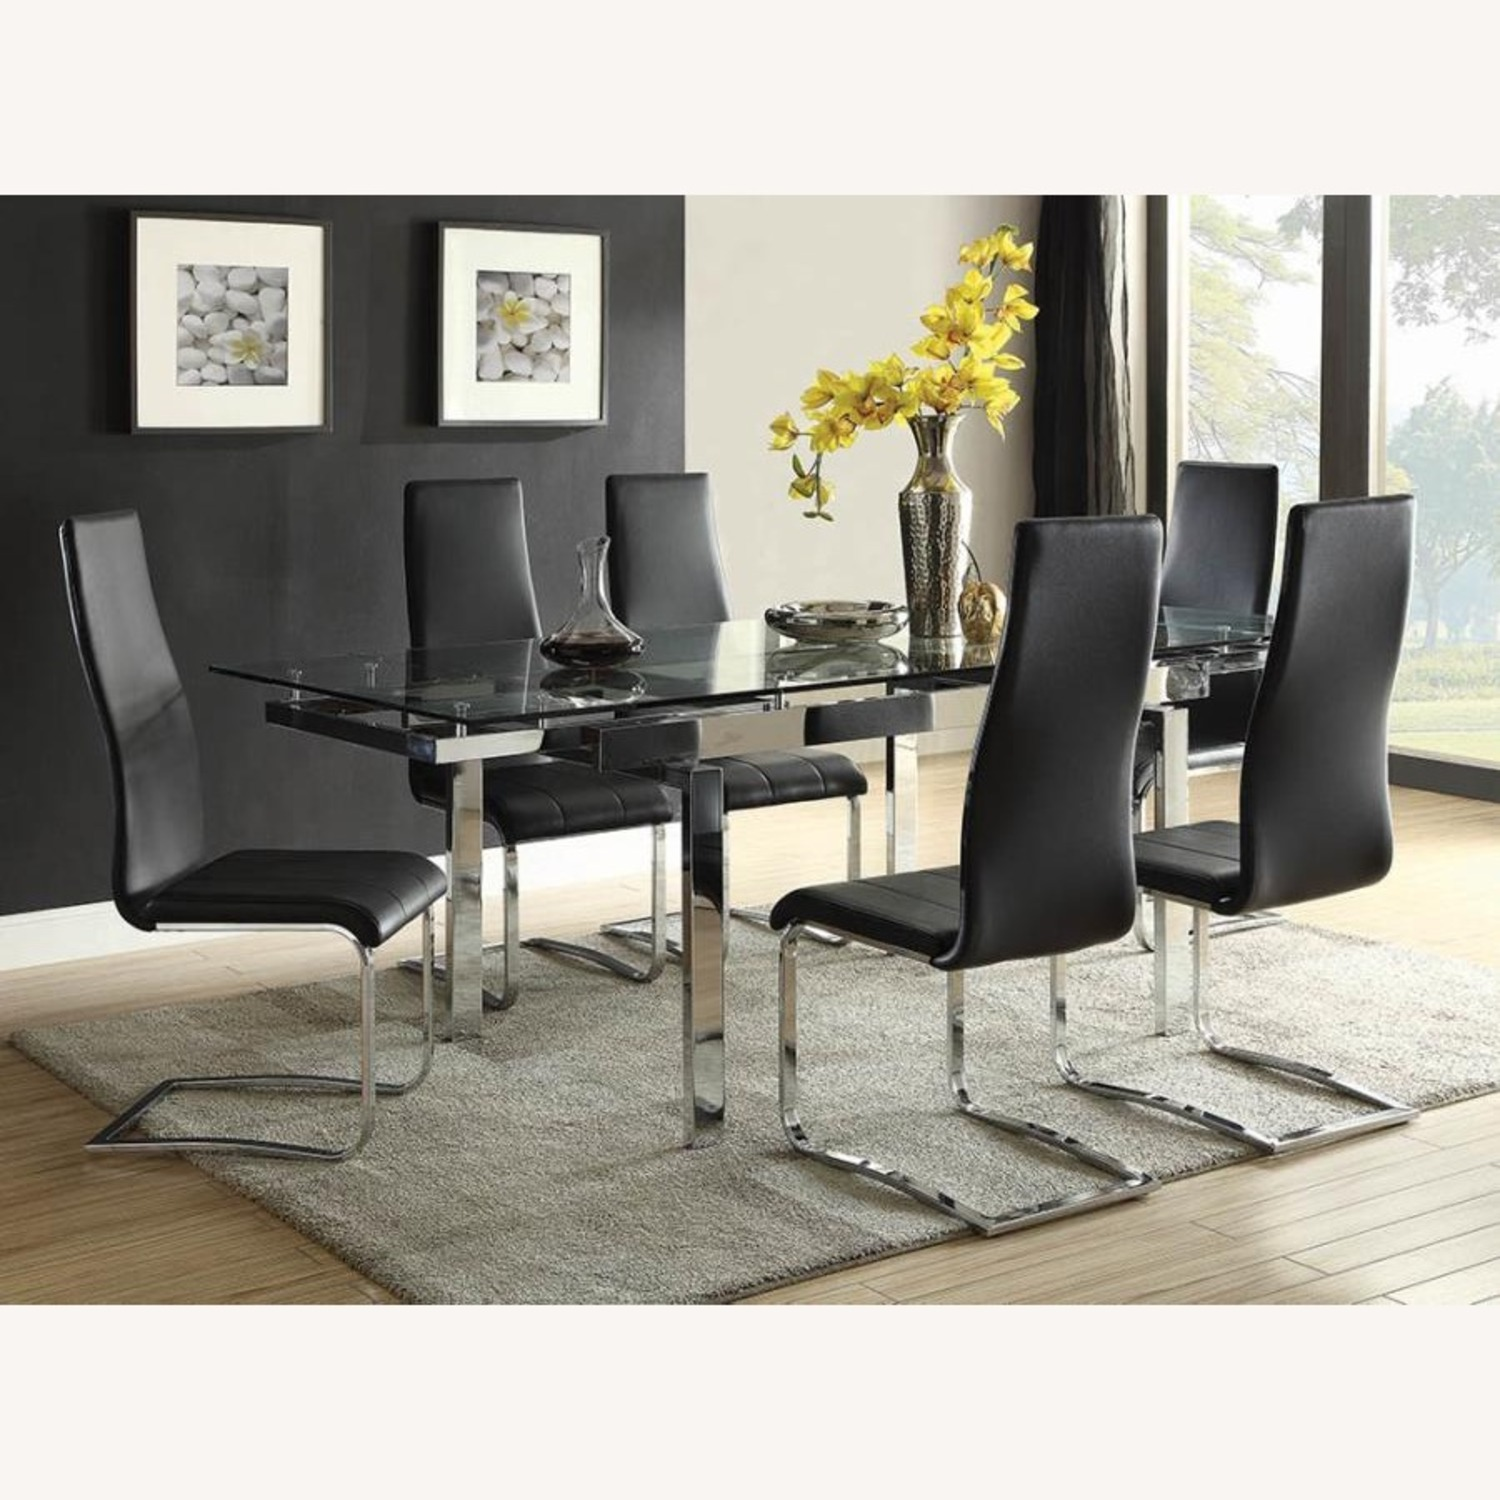 Modern Dining Table Polished In Chrome Finish - image-3